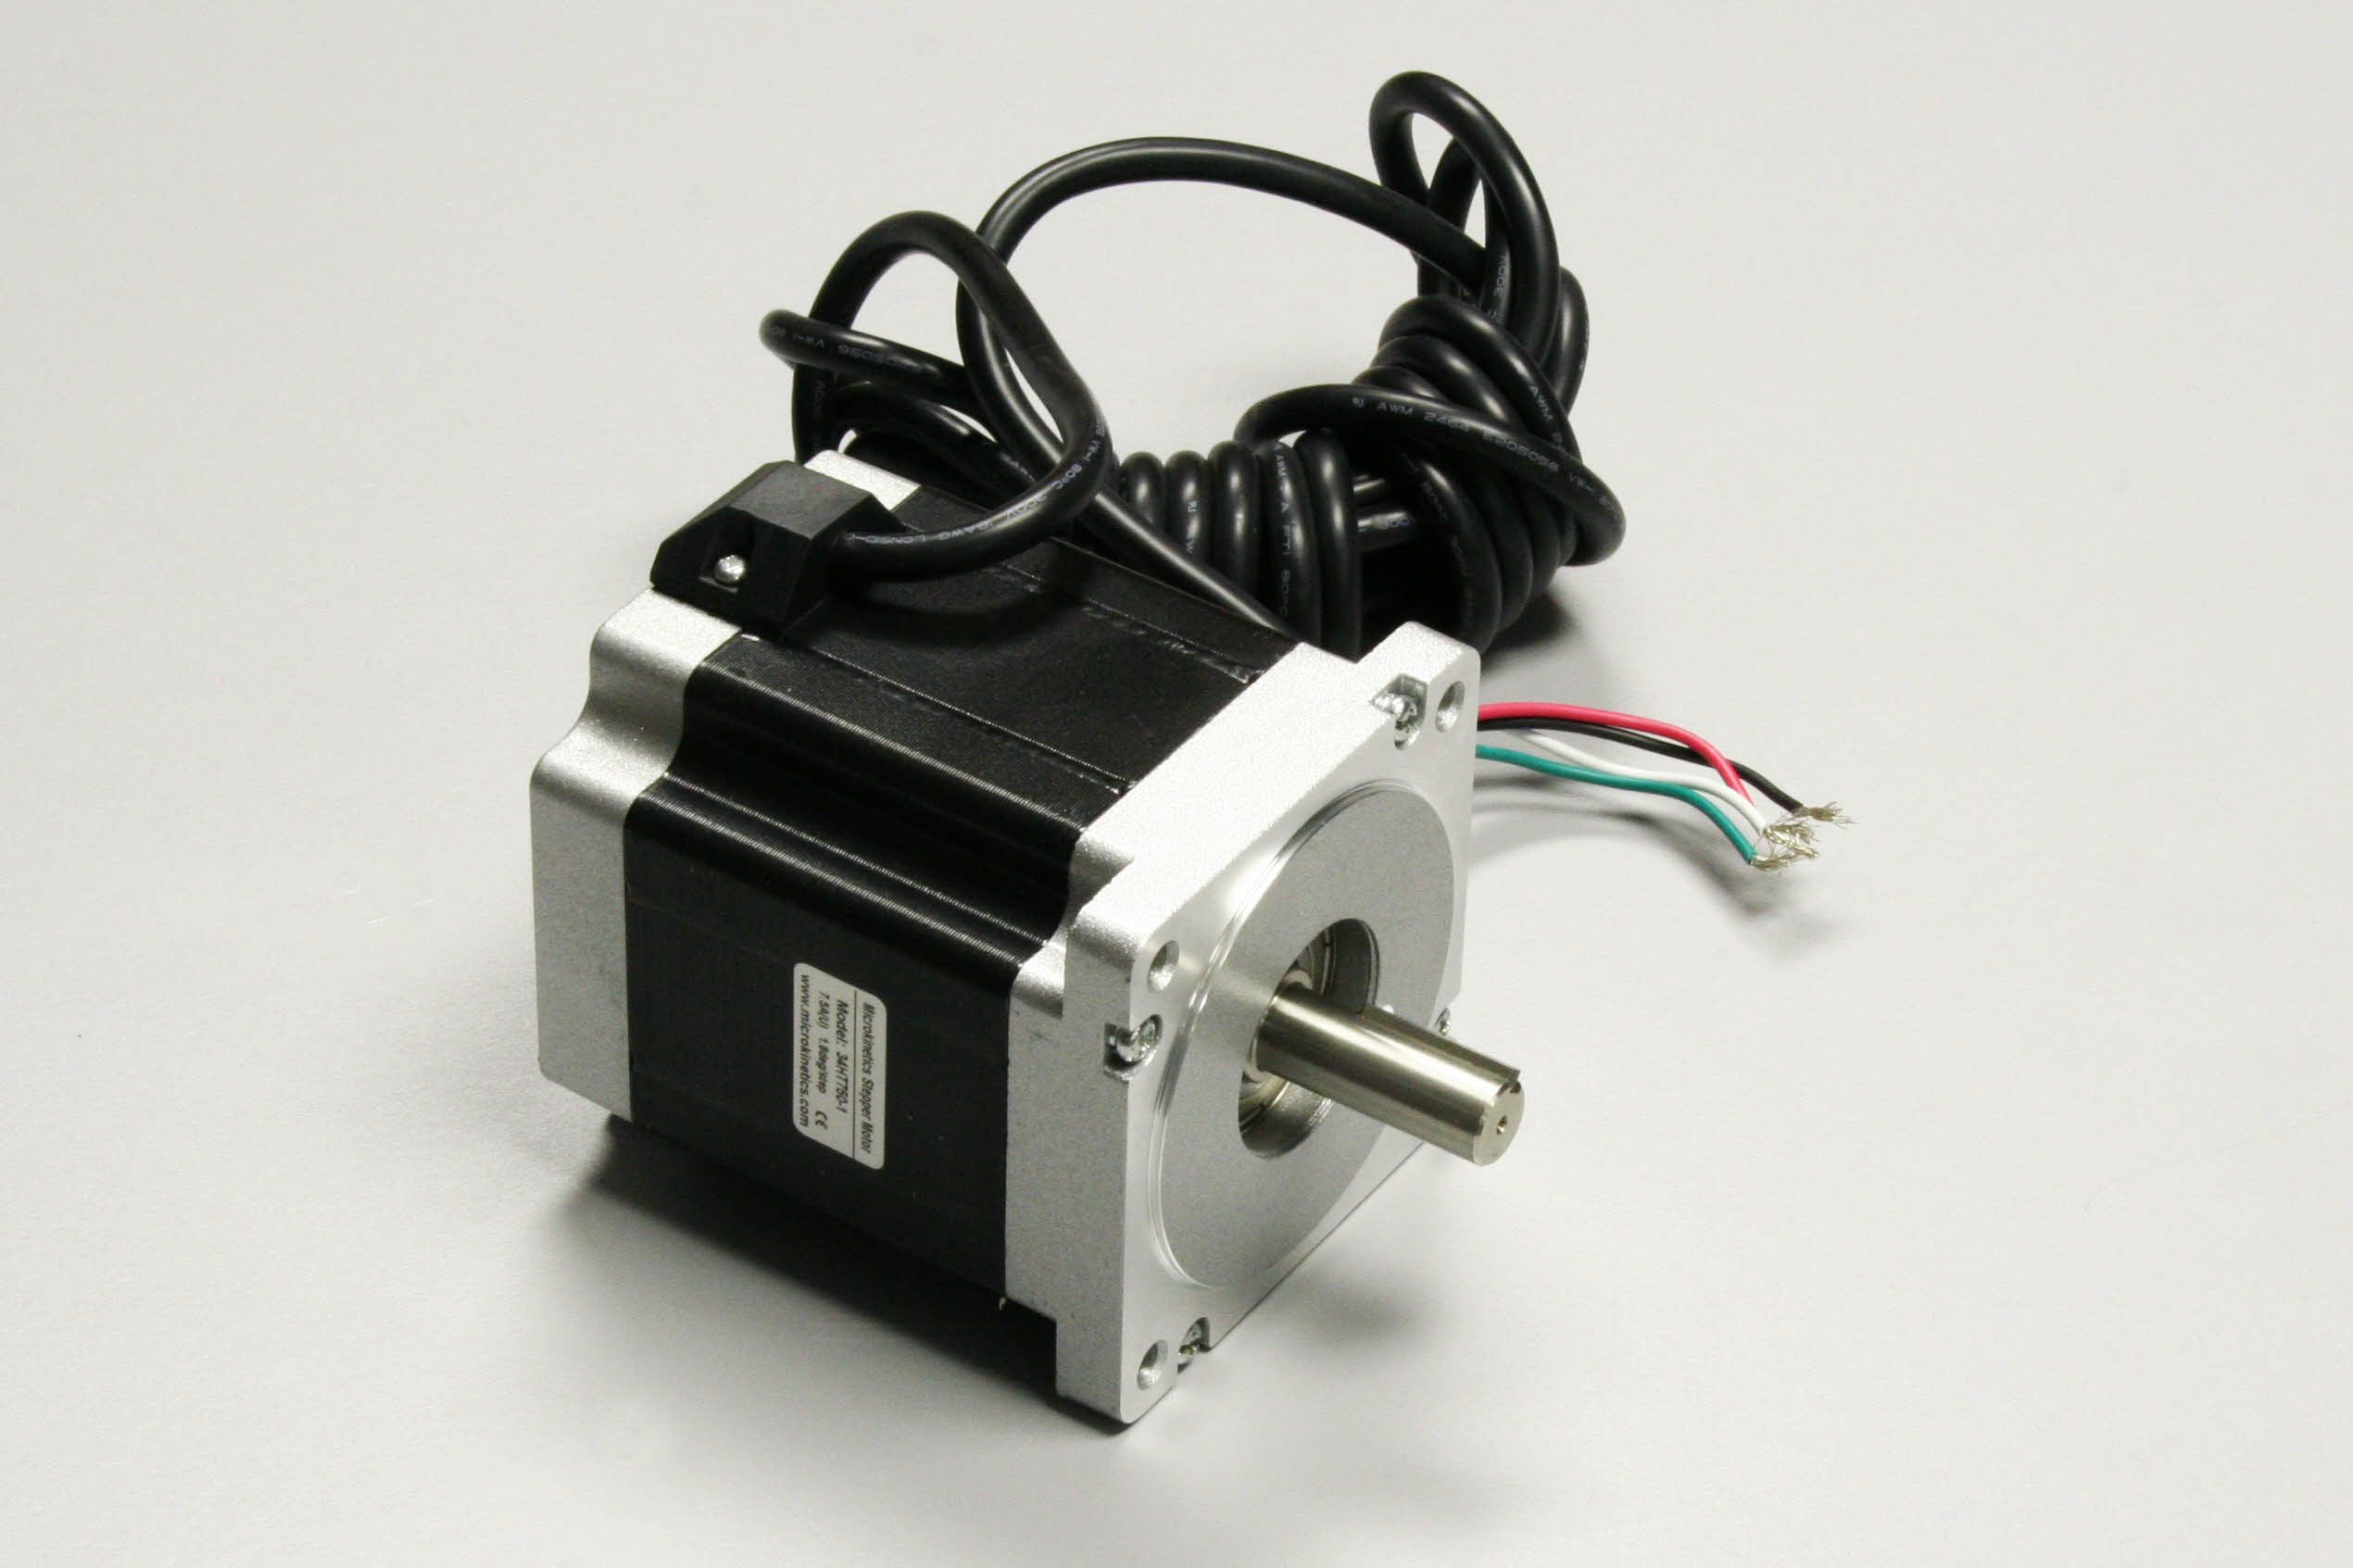 13HT750 motor with armored cable